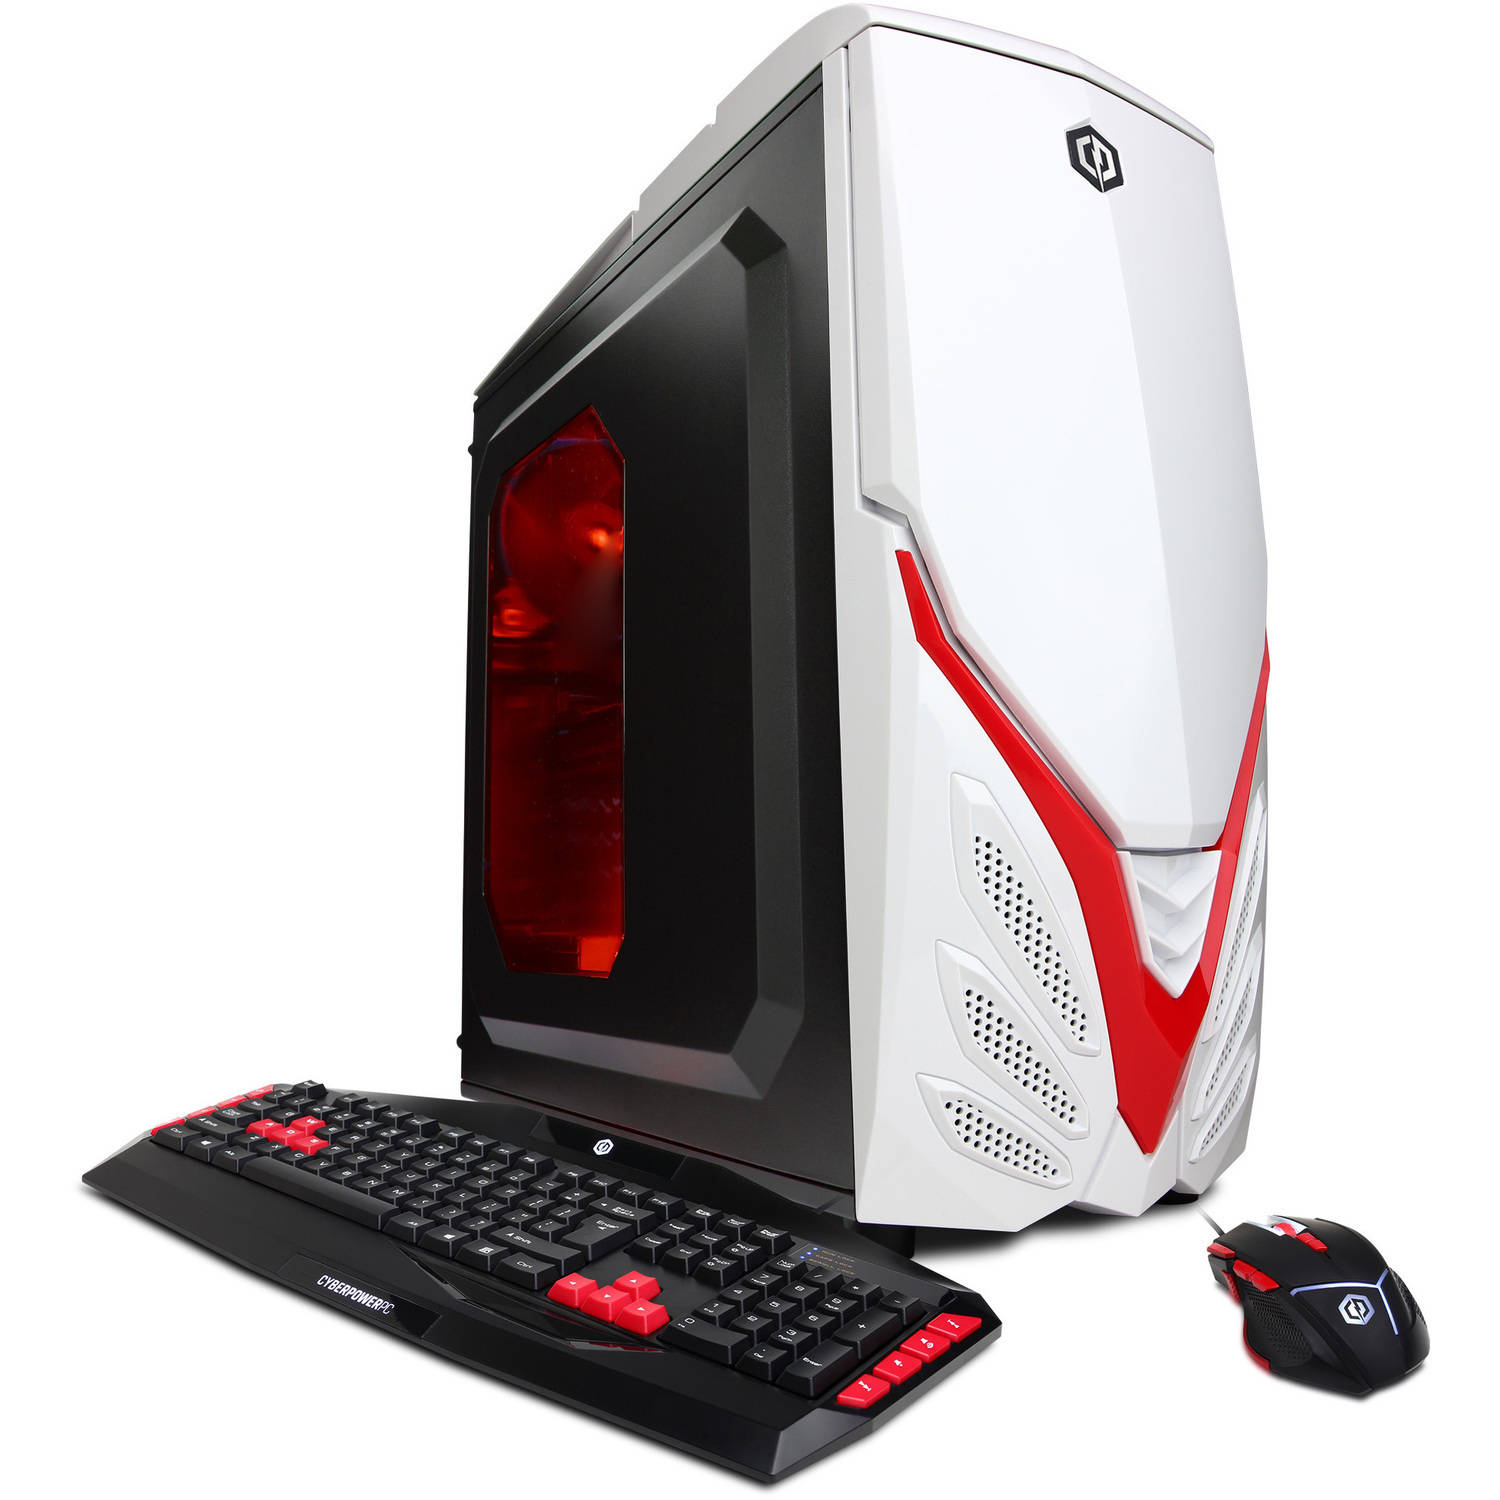 CyberPowerPC Gamer Ultra GUA4400W Gaming Desktop PC with AMD FX-6300 Processor, 8GB Memory, 1TB Hard Drive and Windows 10 Home (Monitor Not Included)